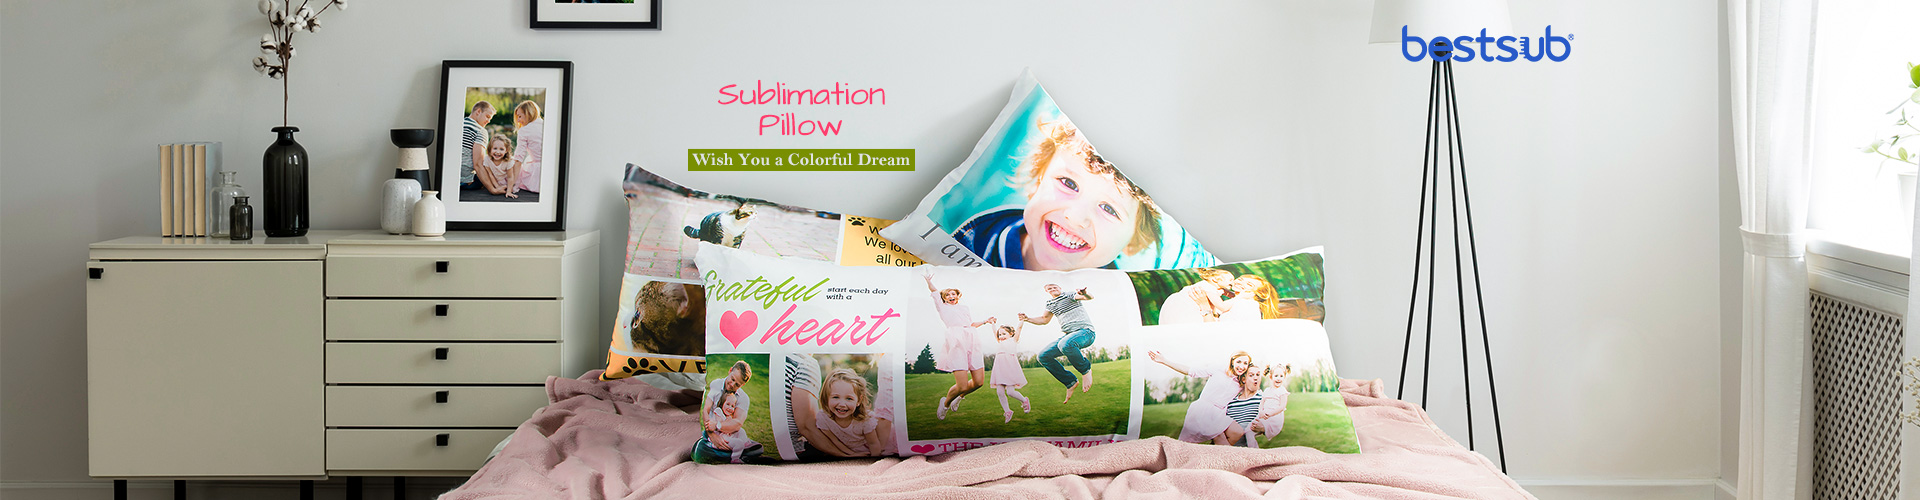 2019-3-19_Sublimation_Pillow_Wish_You_a_Colorful_Dream_new_web